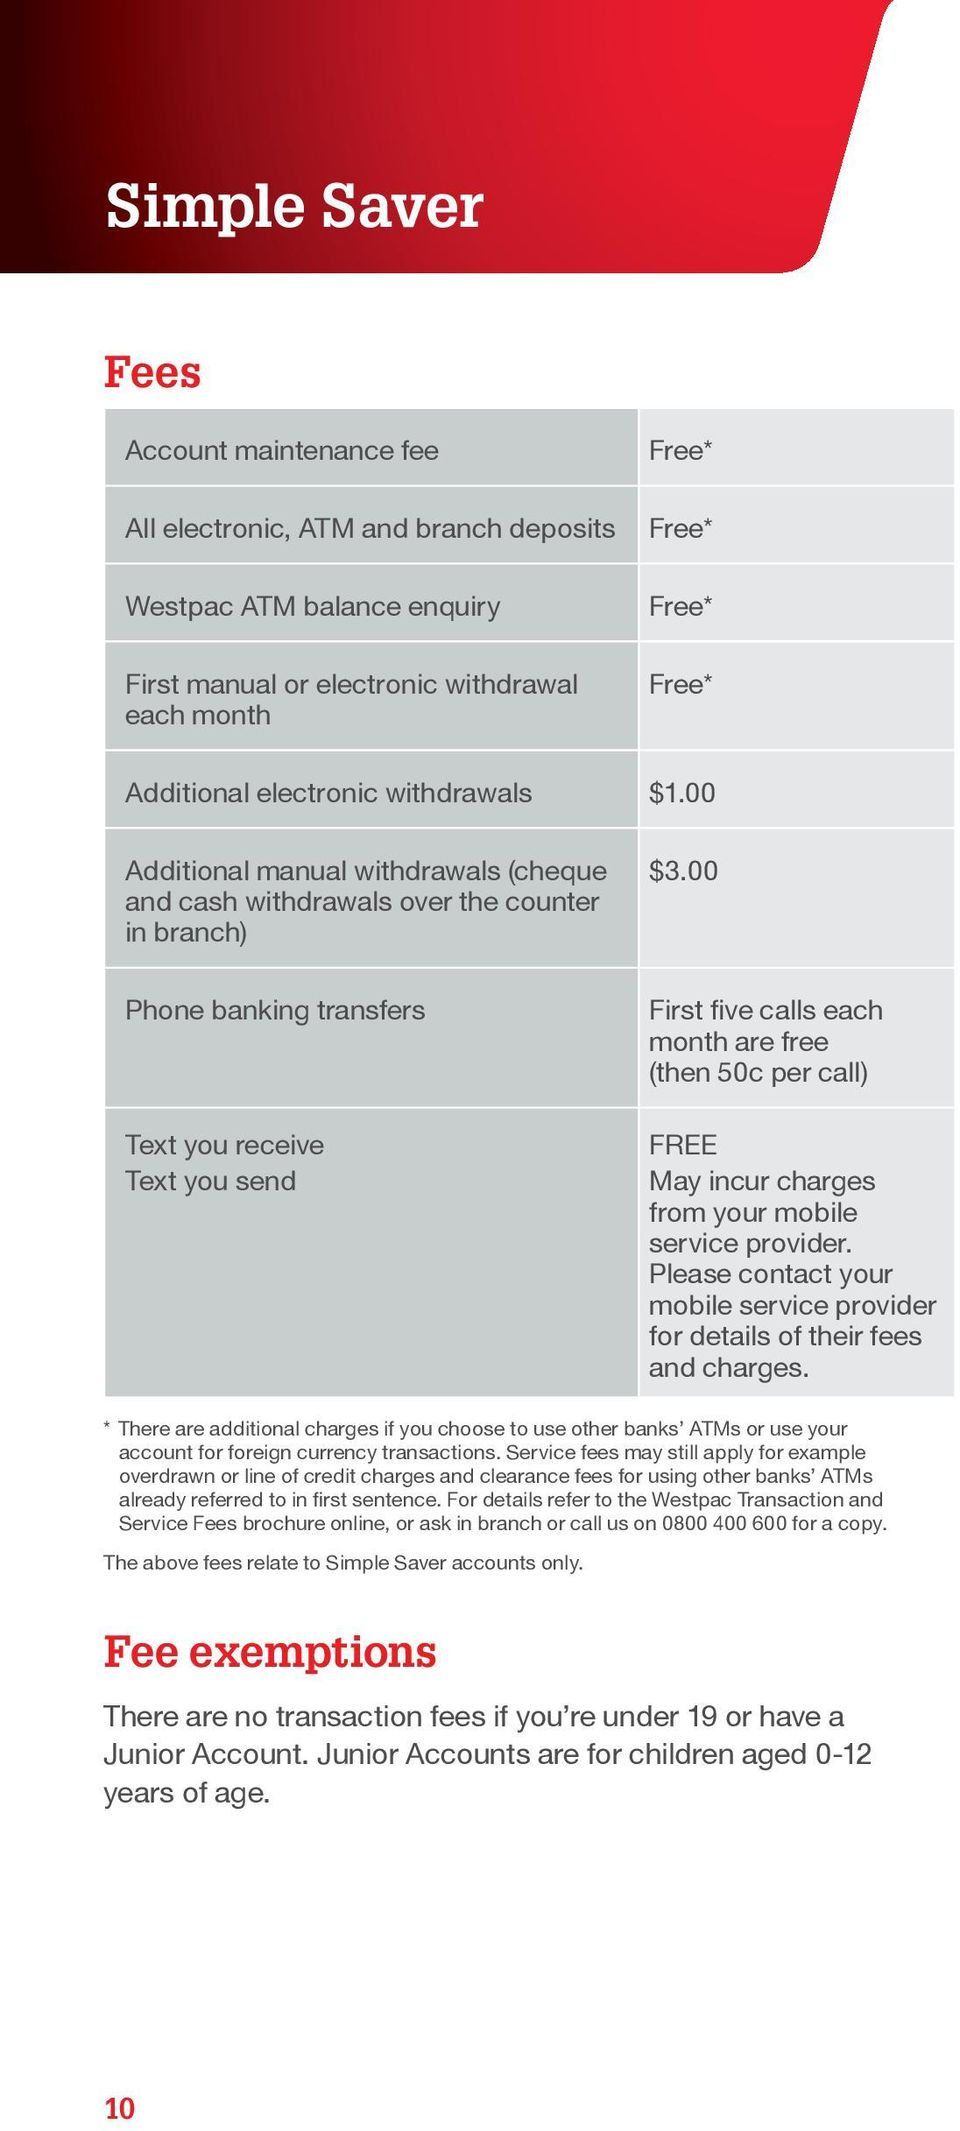 00 First five calls each month are free (then 50c per call) FREE May incur charges from your mobile service provider. Please contact your mobile service provider for details of their fees and charges.